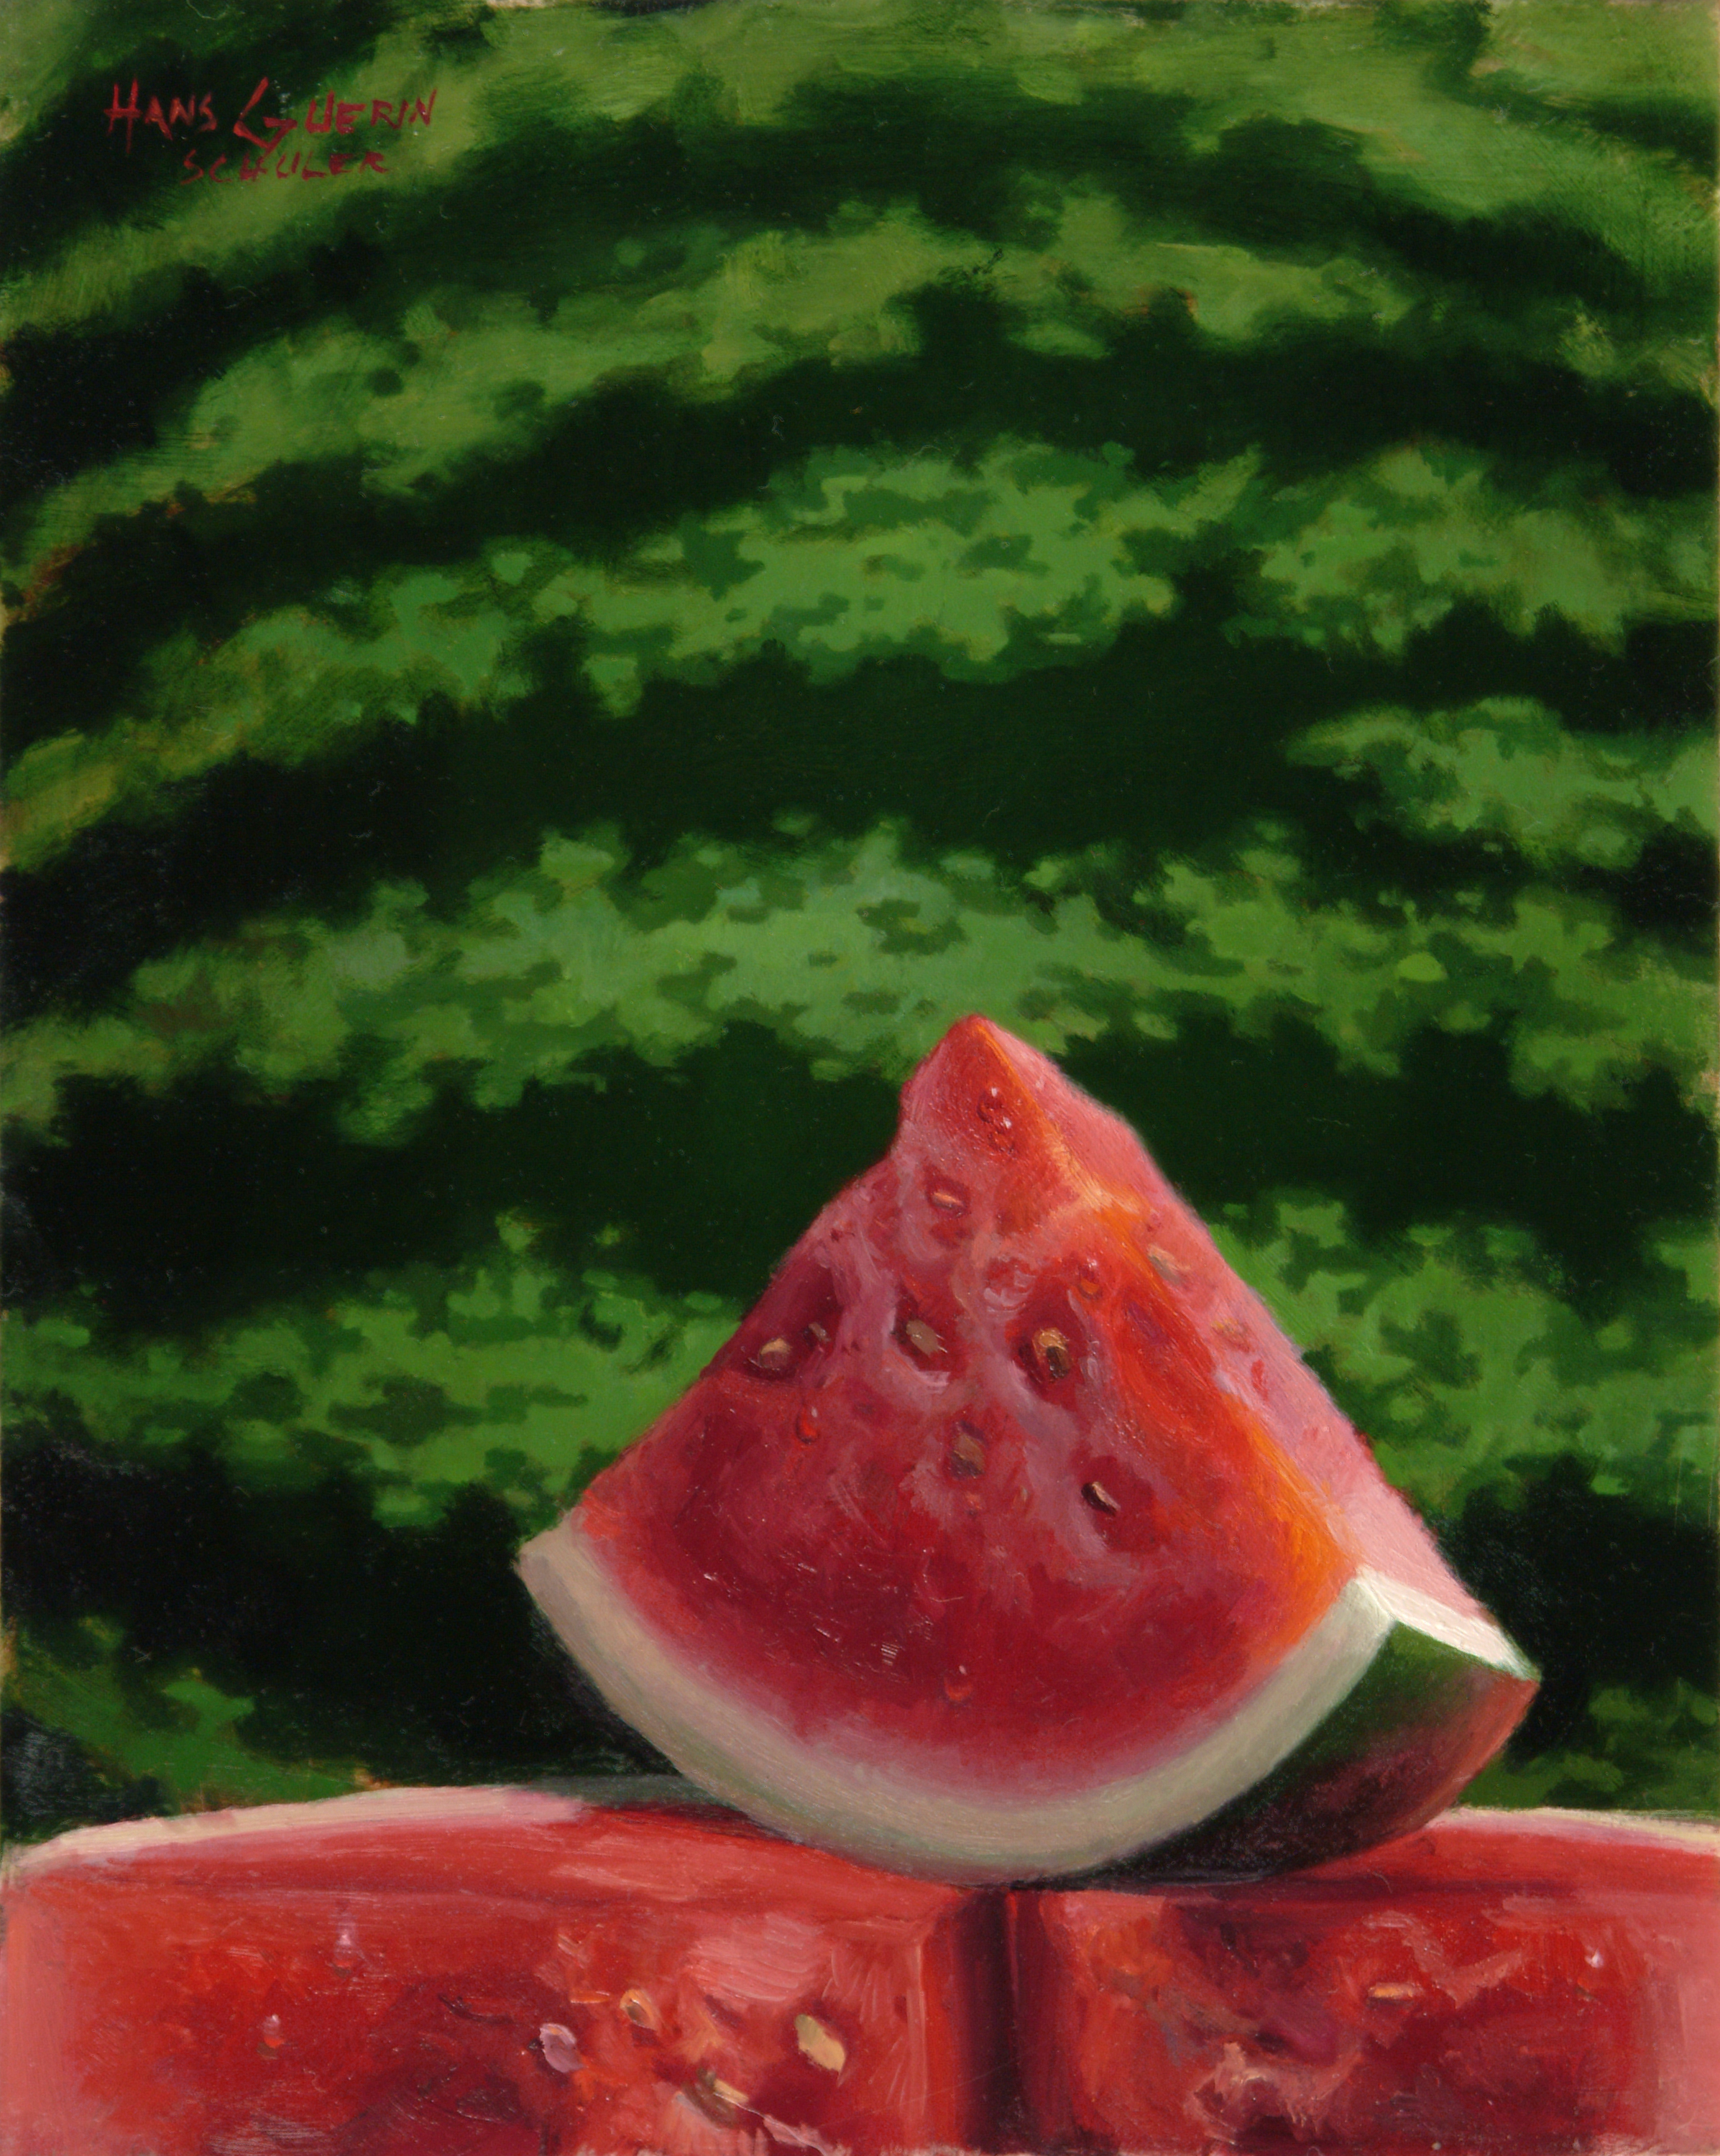 WatermelonDelight